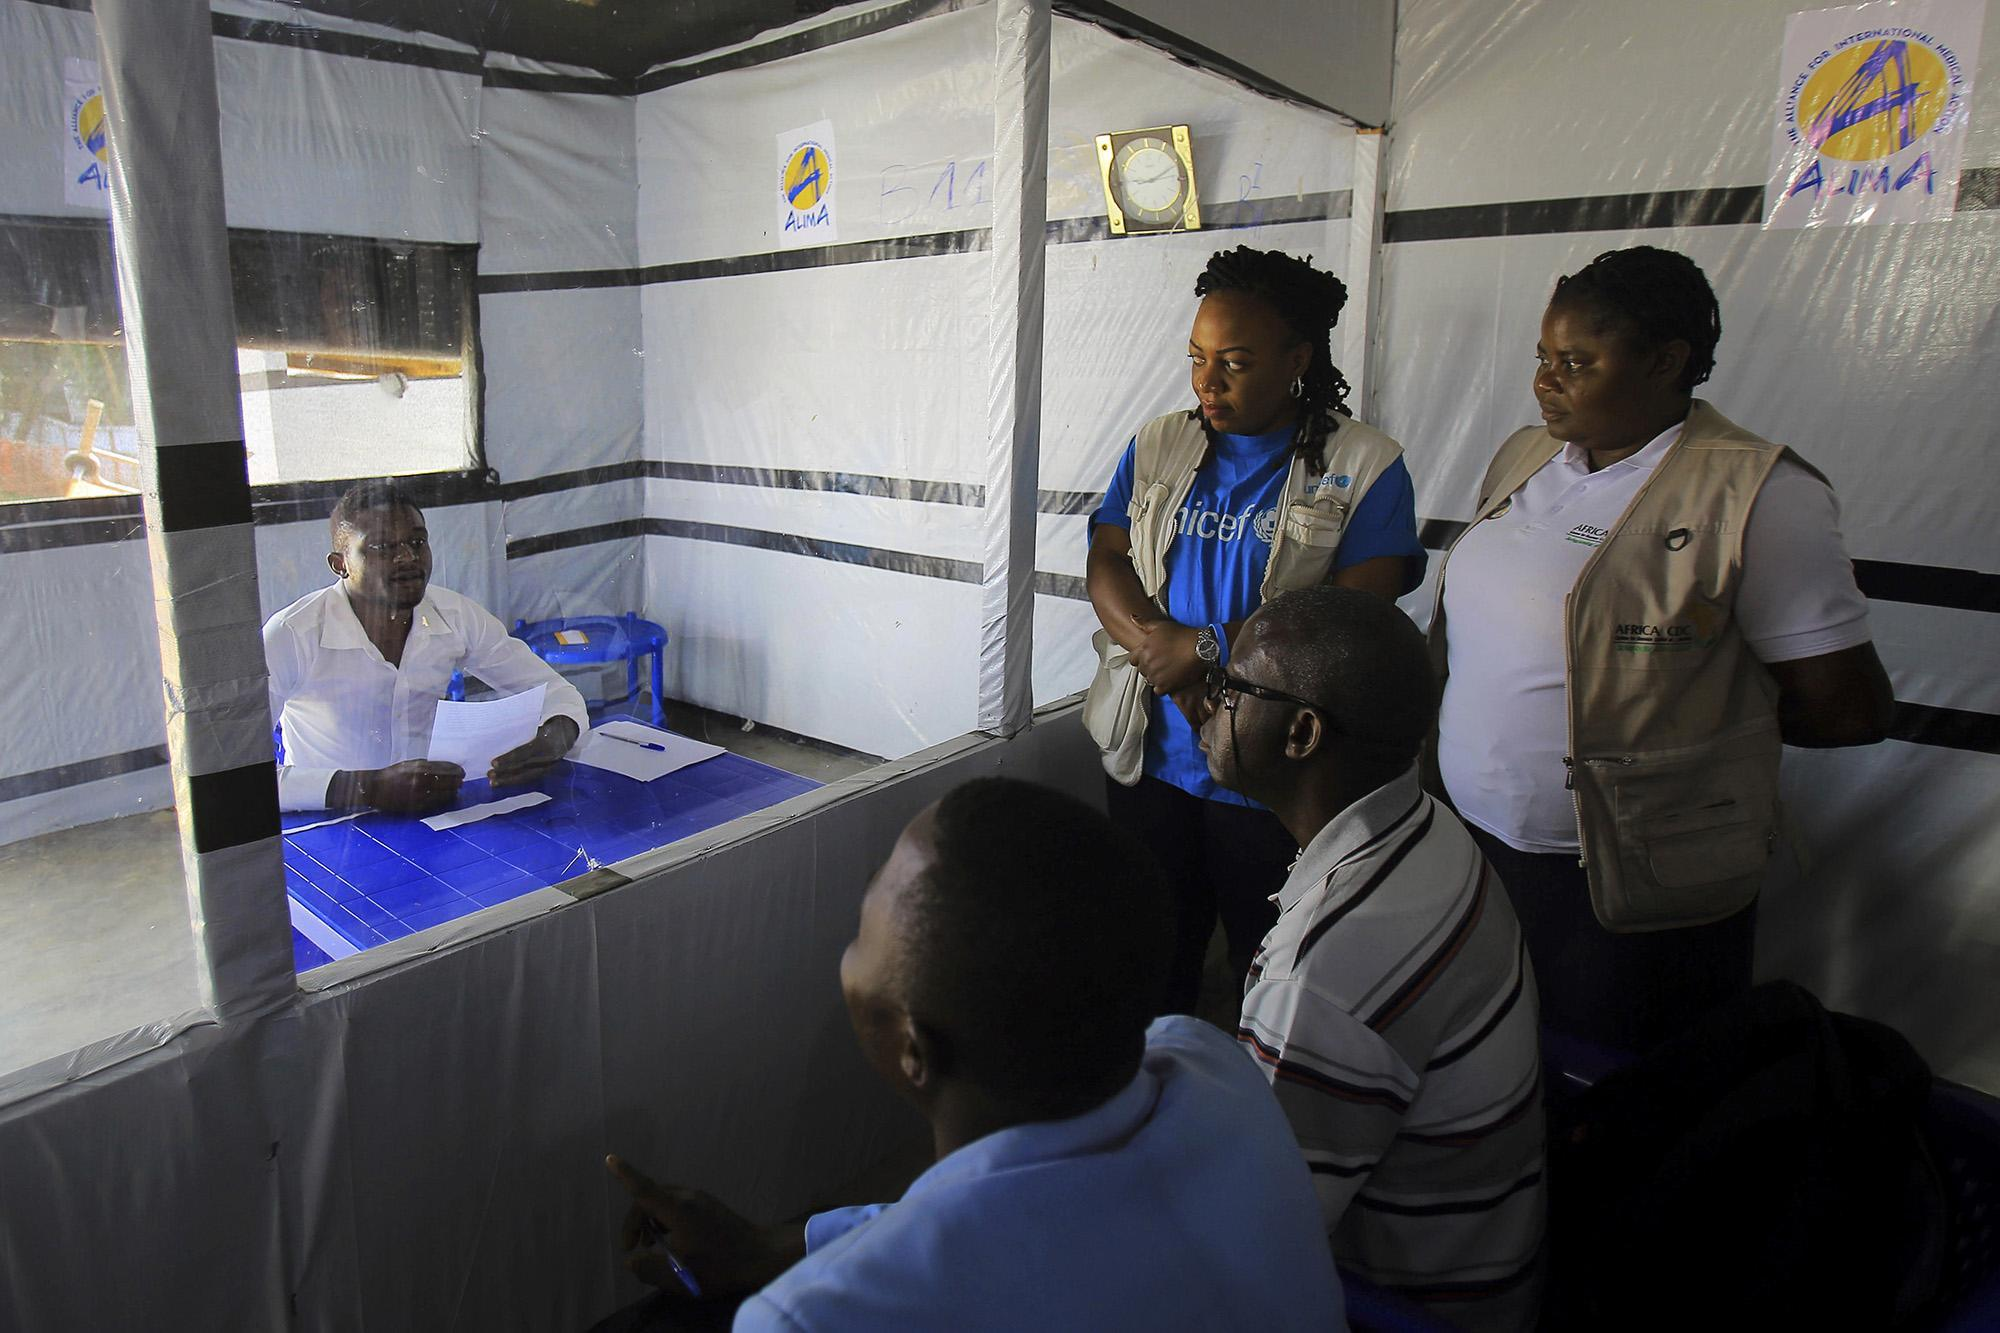 Claude Mabowa Sasi takes his college entrance exam in an isolation unit in Beni, Democratic Republic of Congo.